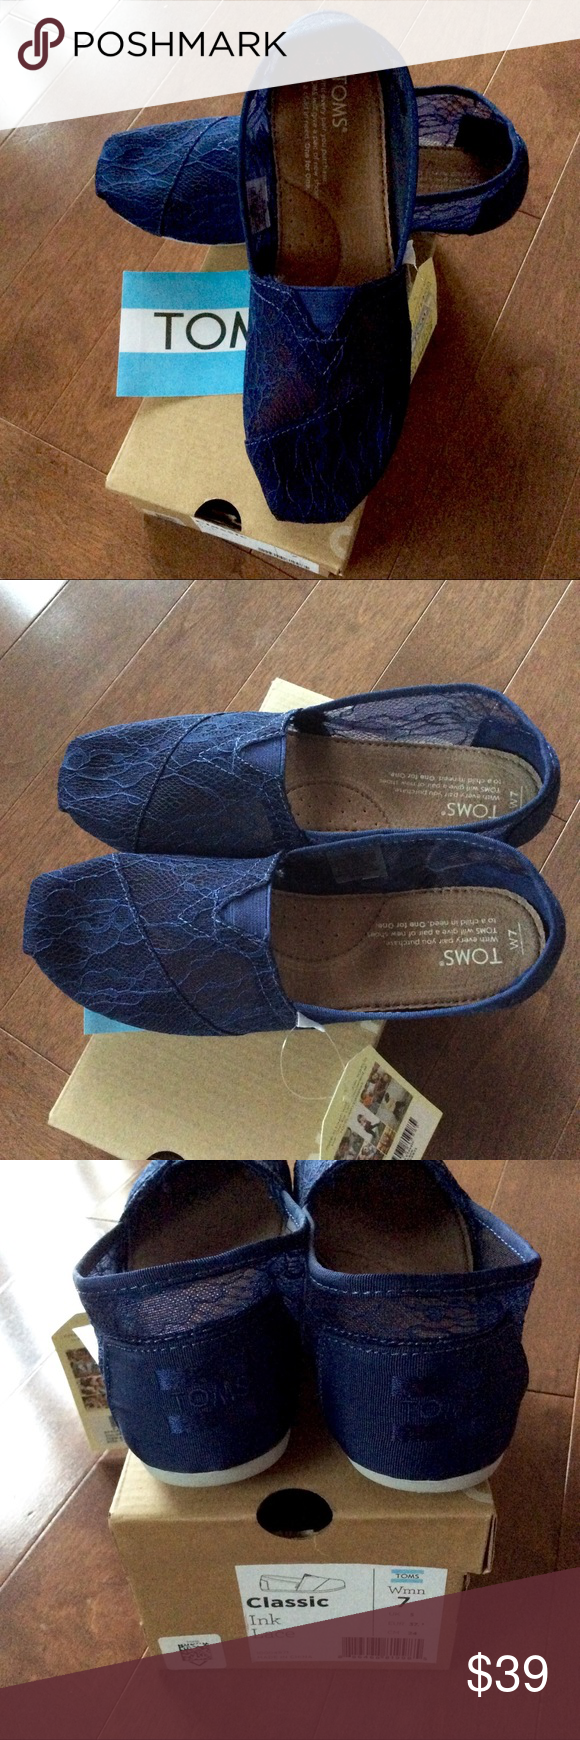 a69d757a192 BNIB TOMS – INK LACE ROPE WOMEN'S ESPADRILLES Brand new in box &  authentic!